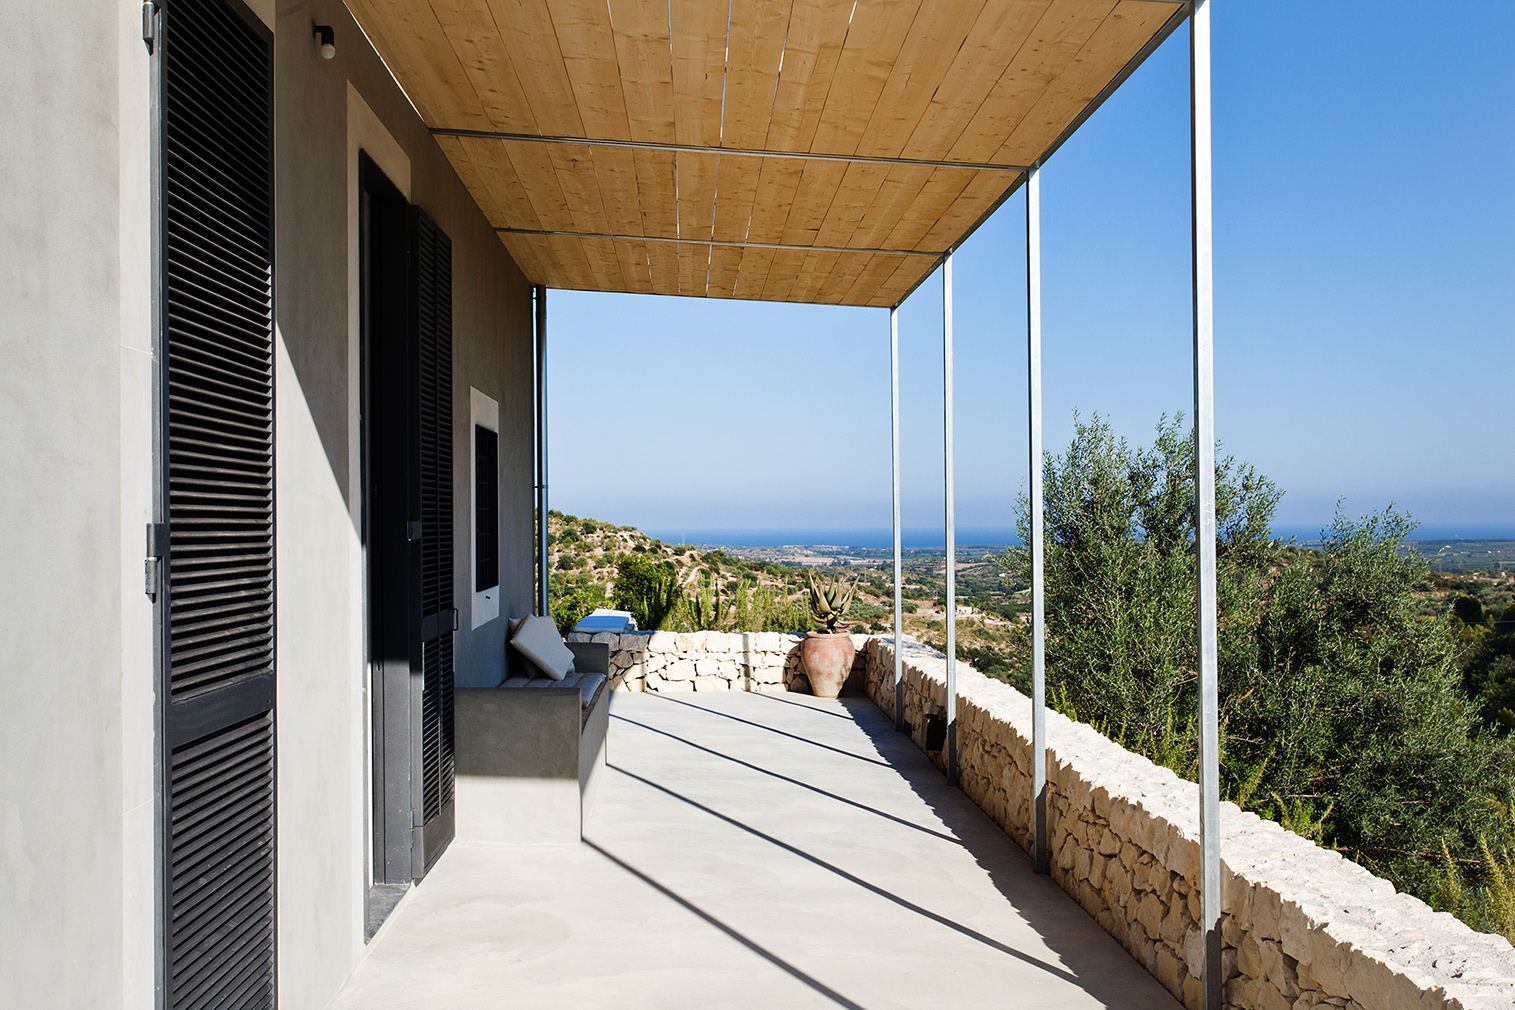 Villa Mura Mura for rent in Sicily via the Thinking Traveller